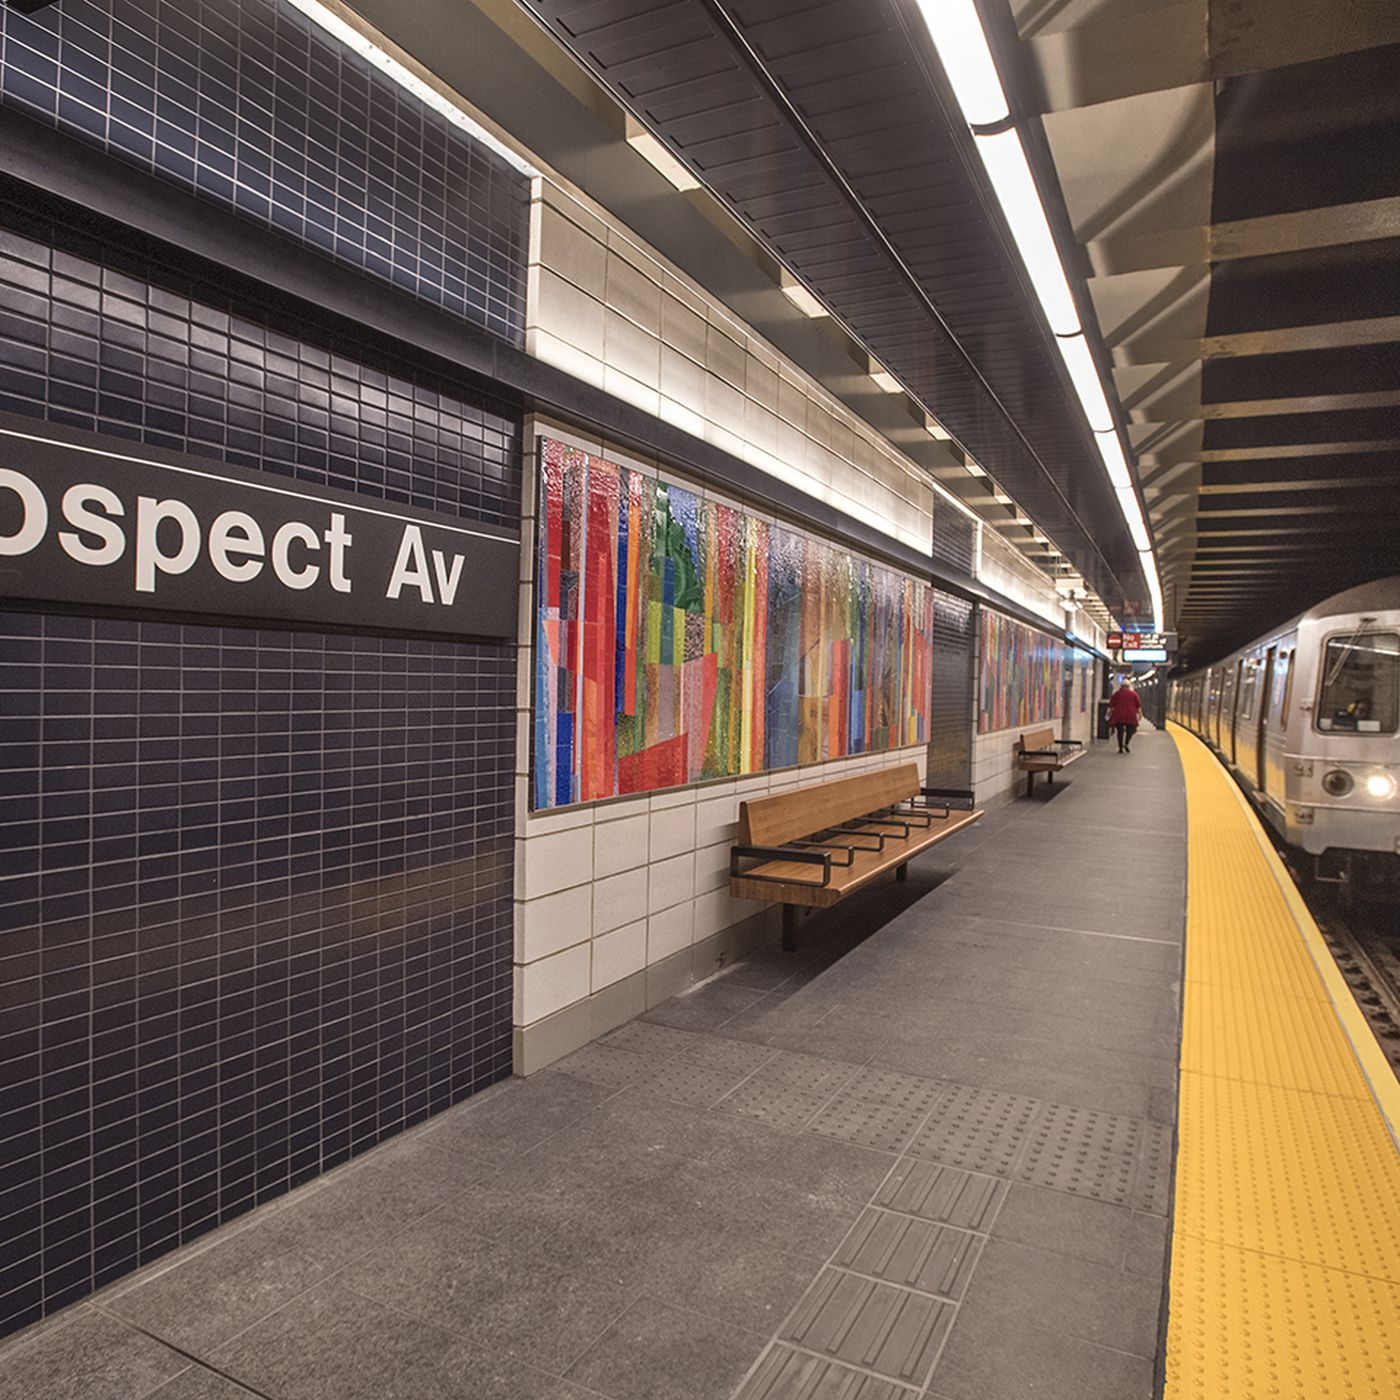 Brooklyn Street Subway Map.Brooklyn S Prospect Ave Subway Station Reopens After Six Month